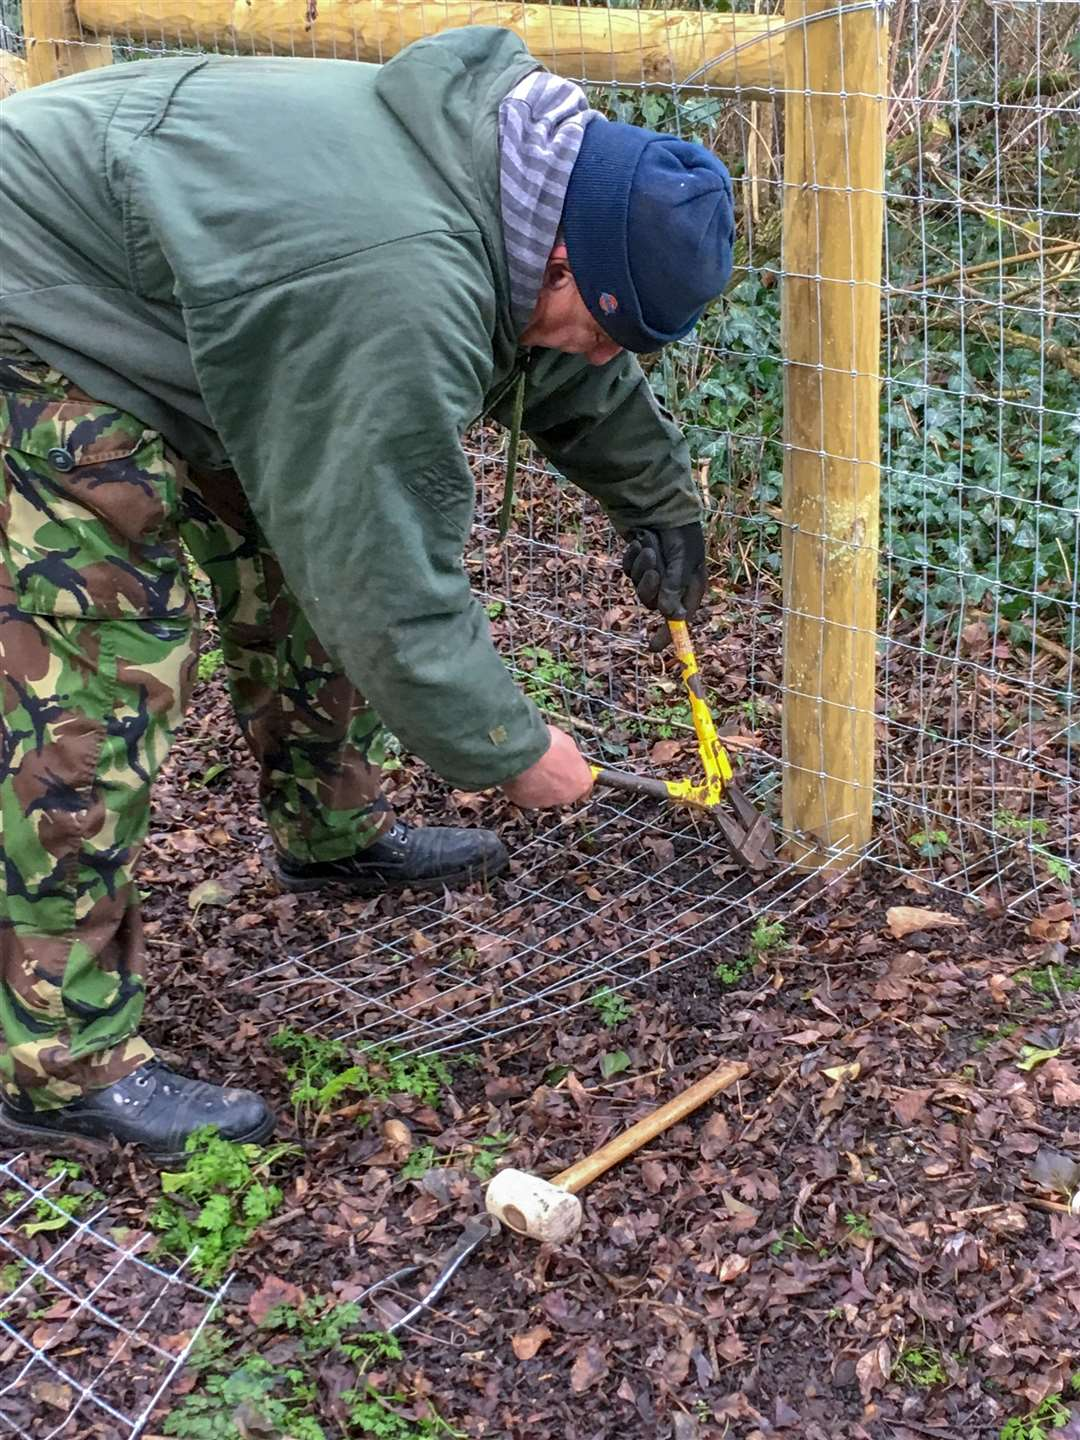 Parish council chairman Steve emery carries out repairs to Manea otter fence which has been repeatedly vandalised. (6909306)